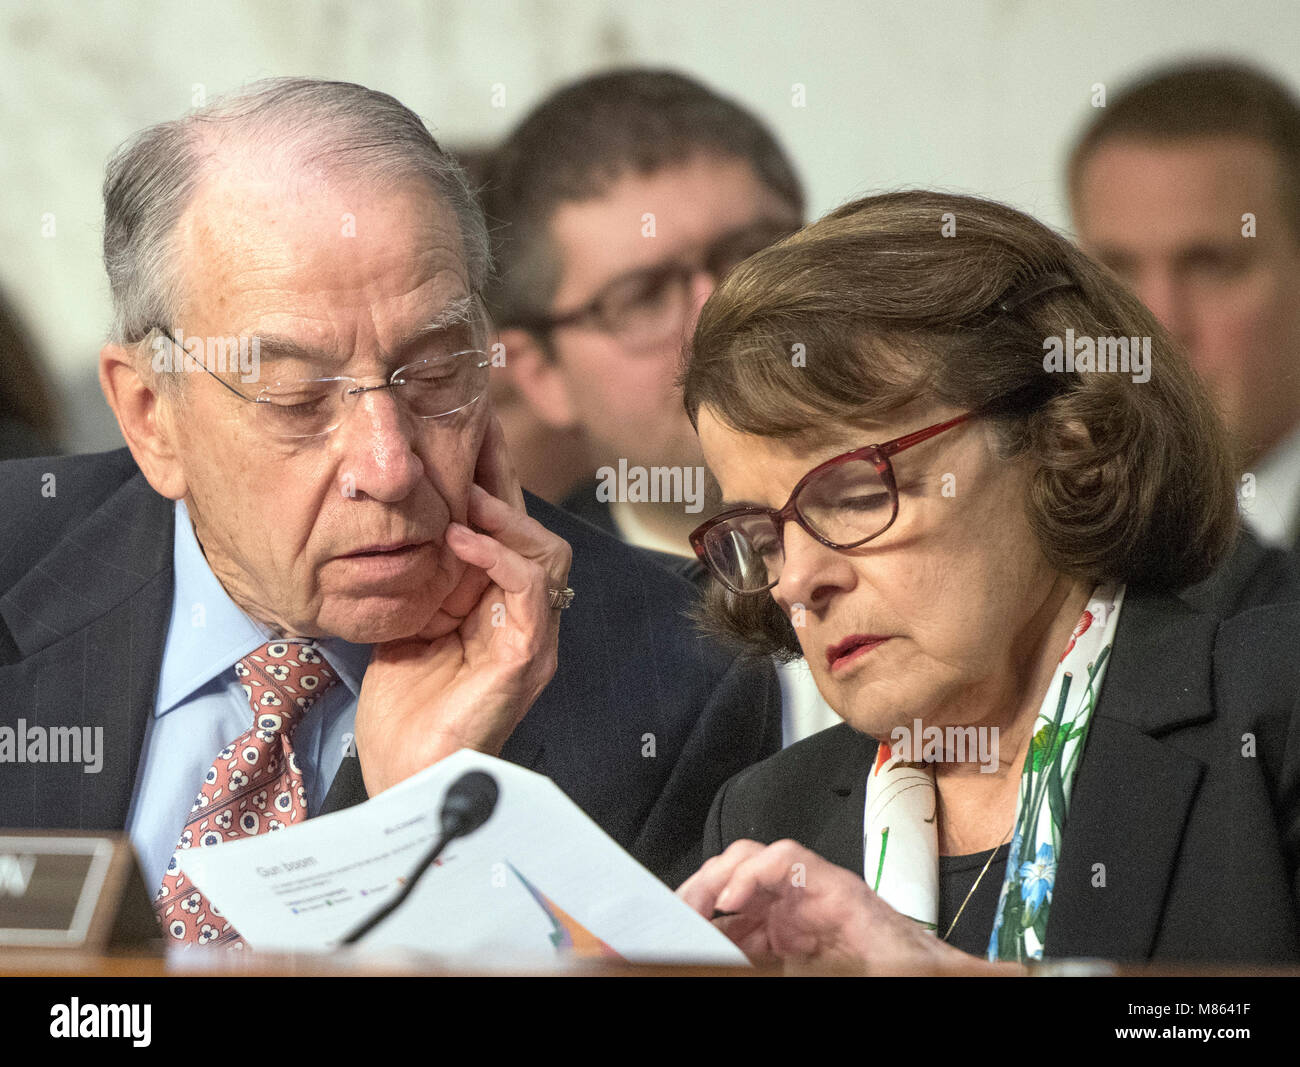 United States Senators Charles Grassley (Republican of Iowa), left, and Dianne Feinstein (Democrat of California), - Stock Image